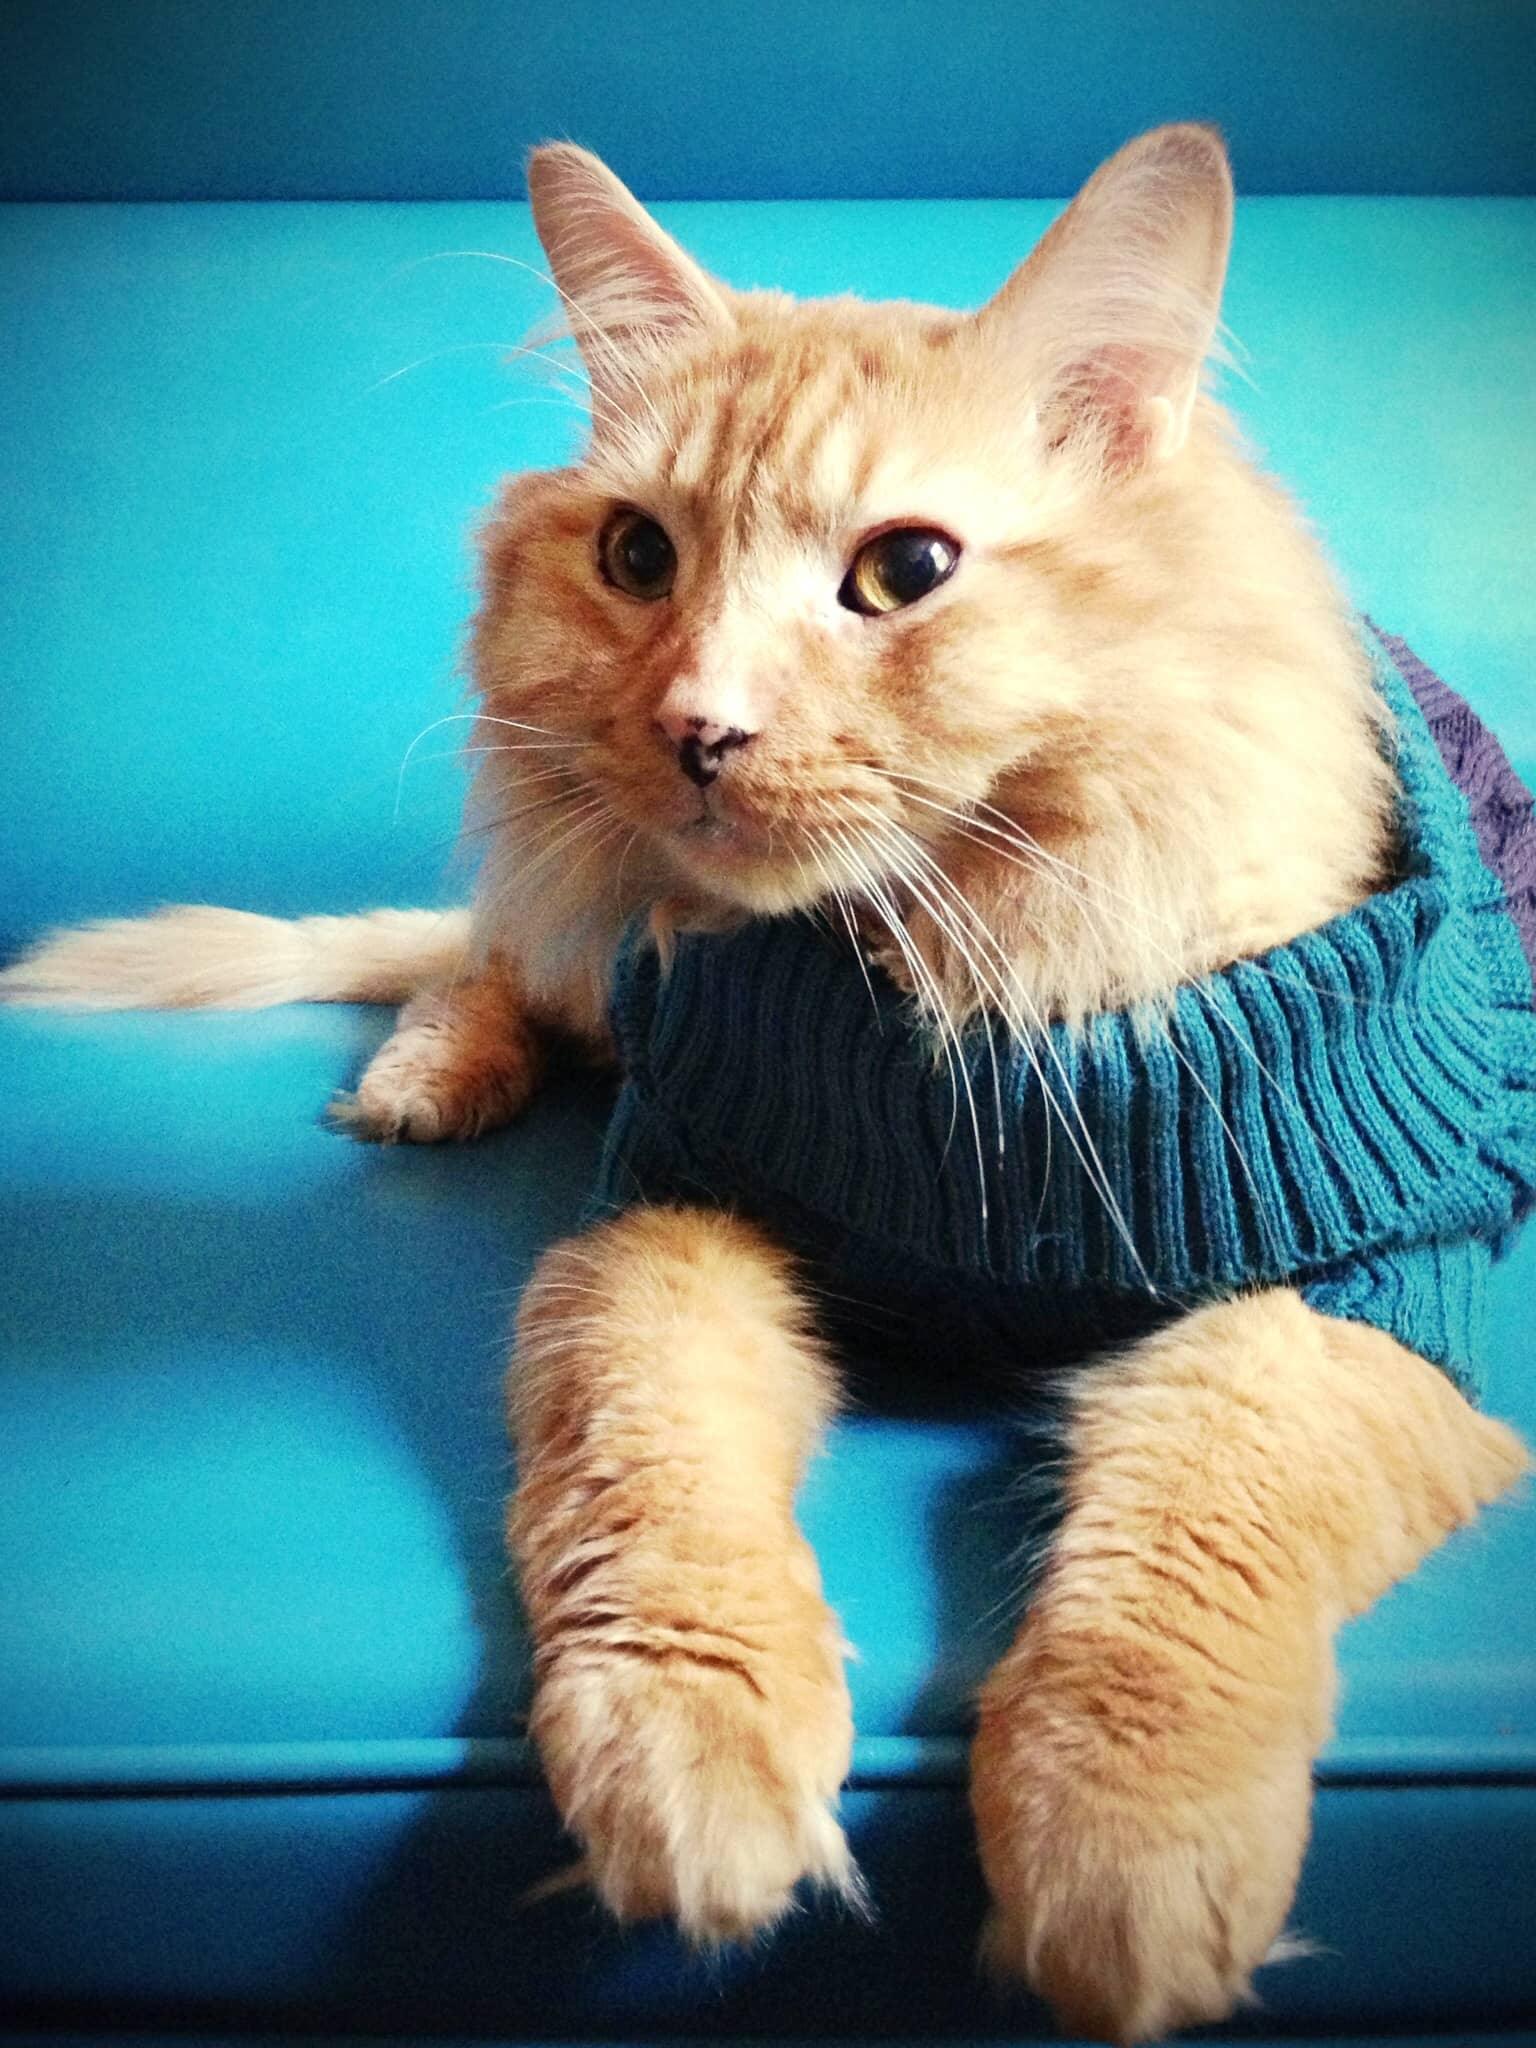 Haskell the kitty in a sweater